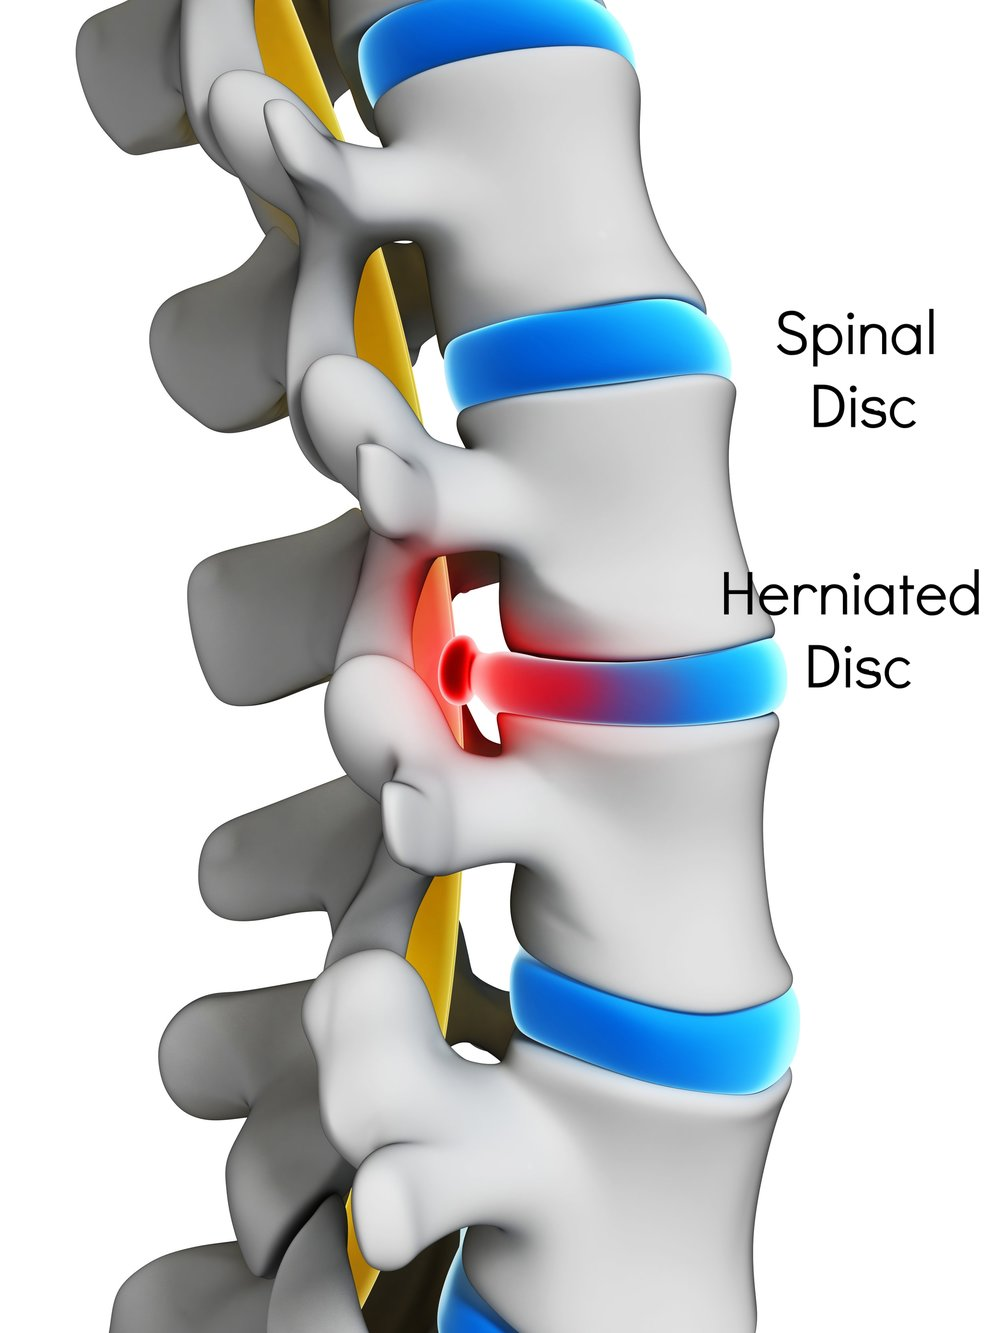 Intervertebral or Spinal Disc - It is a rubbery disc that lies between adjacent vertebrae in the spine, acting as cushions that facilitate movement. The degeneration of spinal disc is one of the most common causes of back & neck pain. Herniated or rupture discs can 'pinch a nerve' causing neck pain running down the arms, back pain running down the legs, or Sciatica.